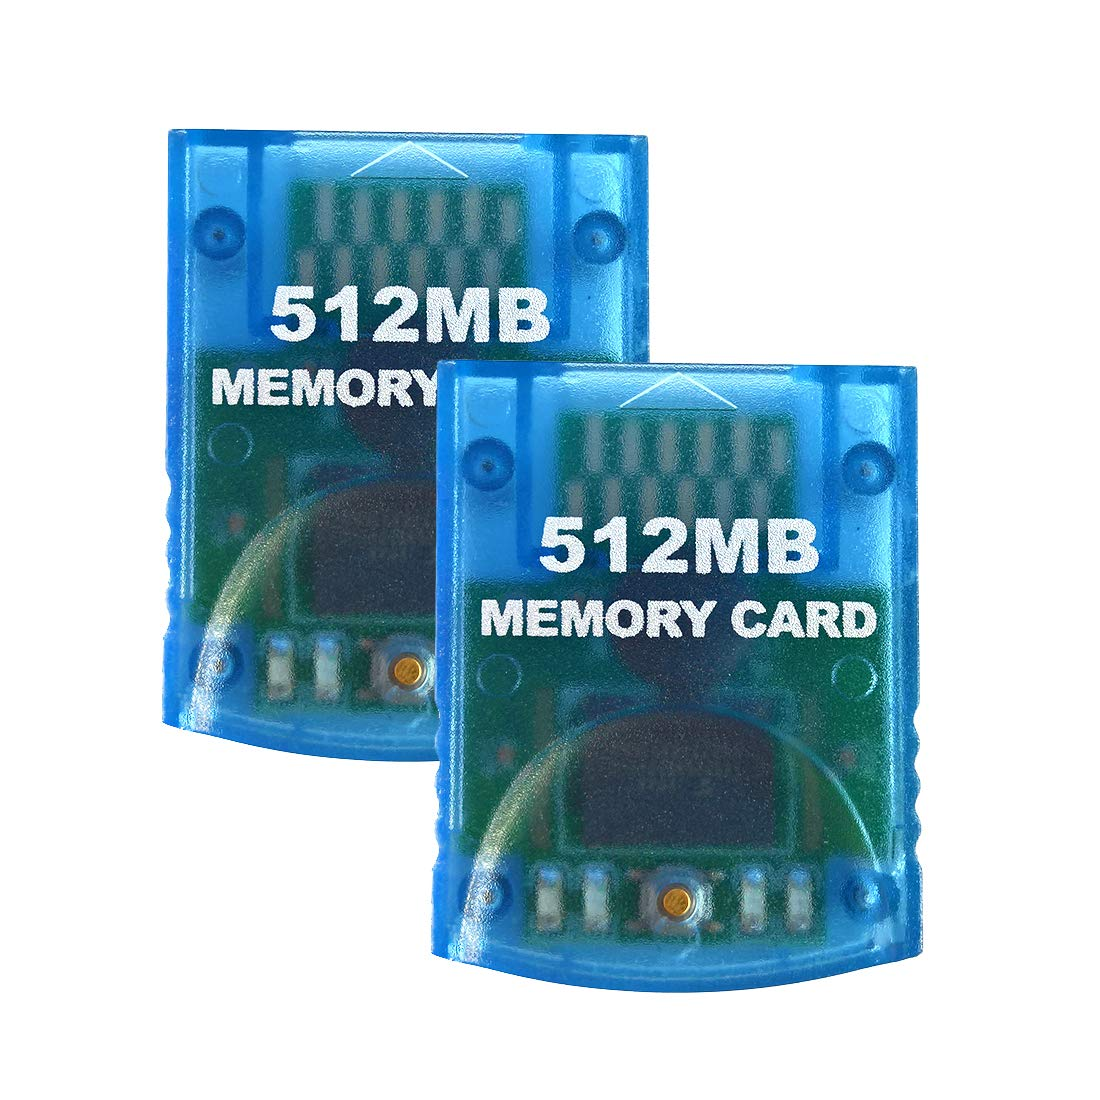 Aoyoho 2 Packs Memory Card 512MB Gaming Memory Card Compatible for Wii and Gamecube by Aoyoho